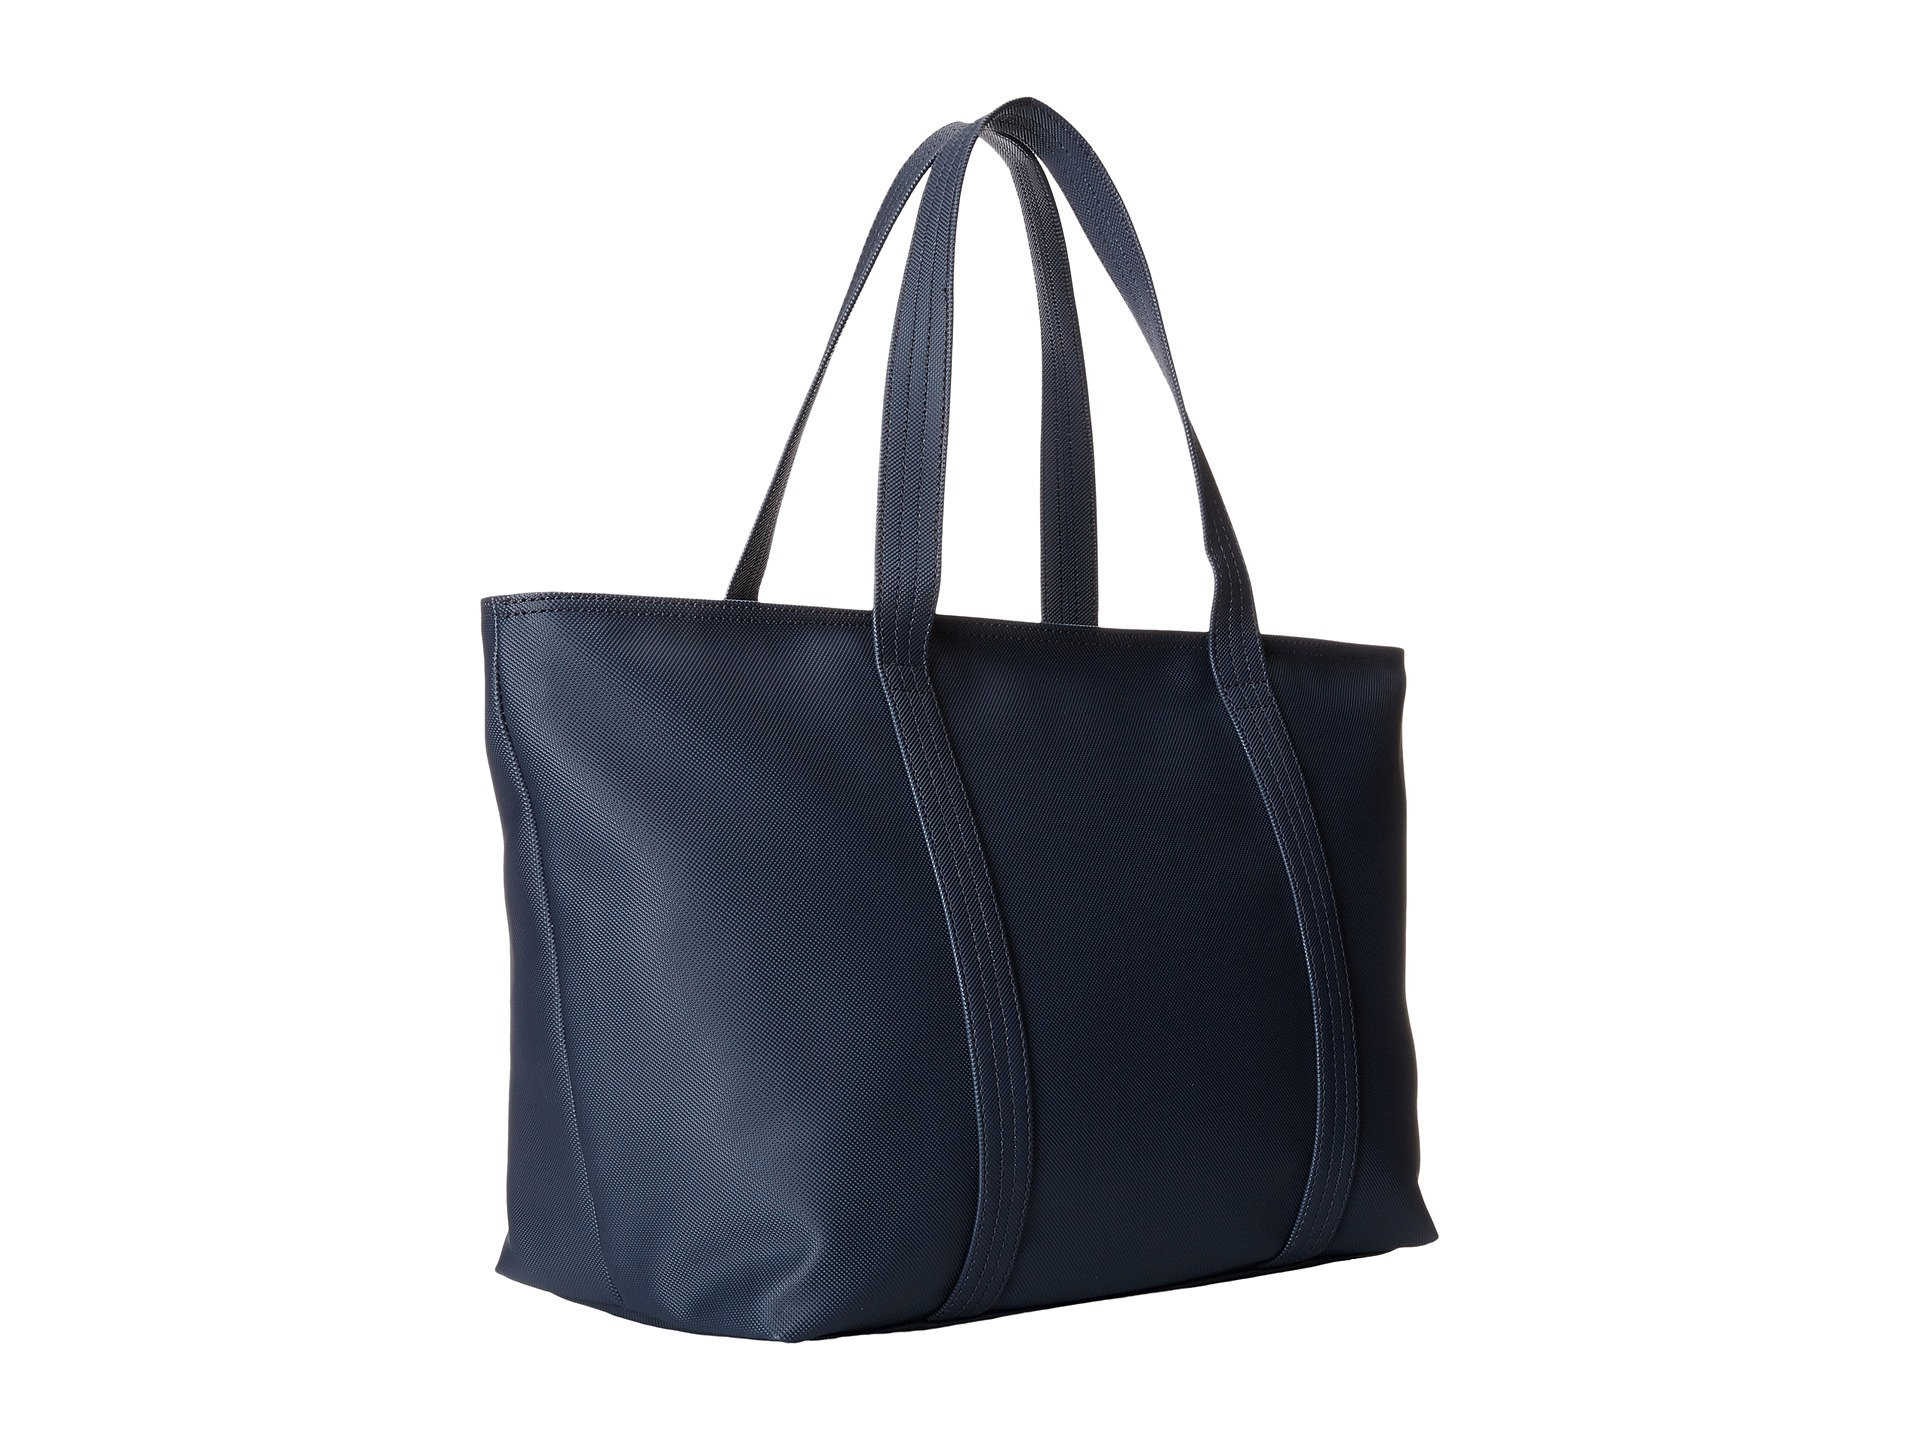 06612e5f9d15 Lyst - Lacoste Classic Large Shopping Bag in Black